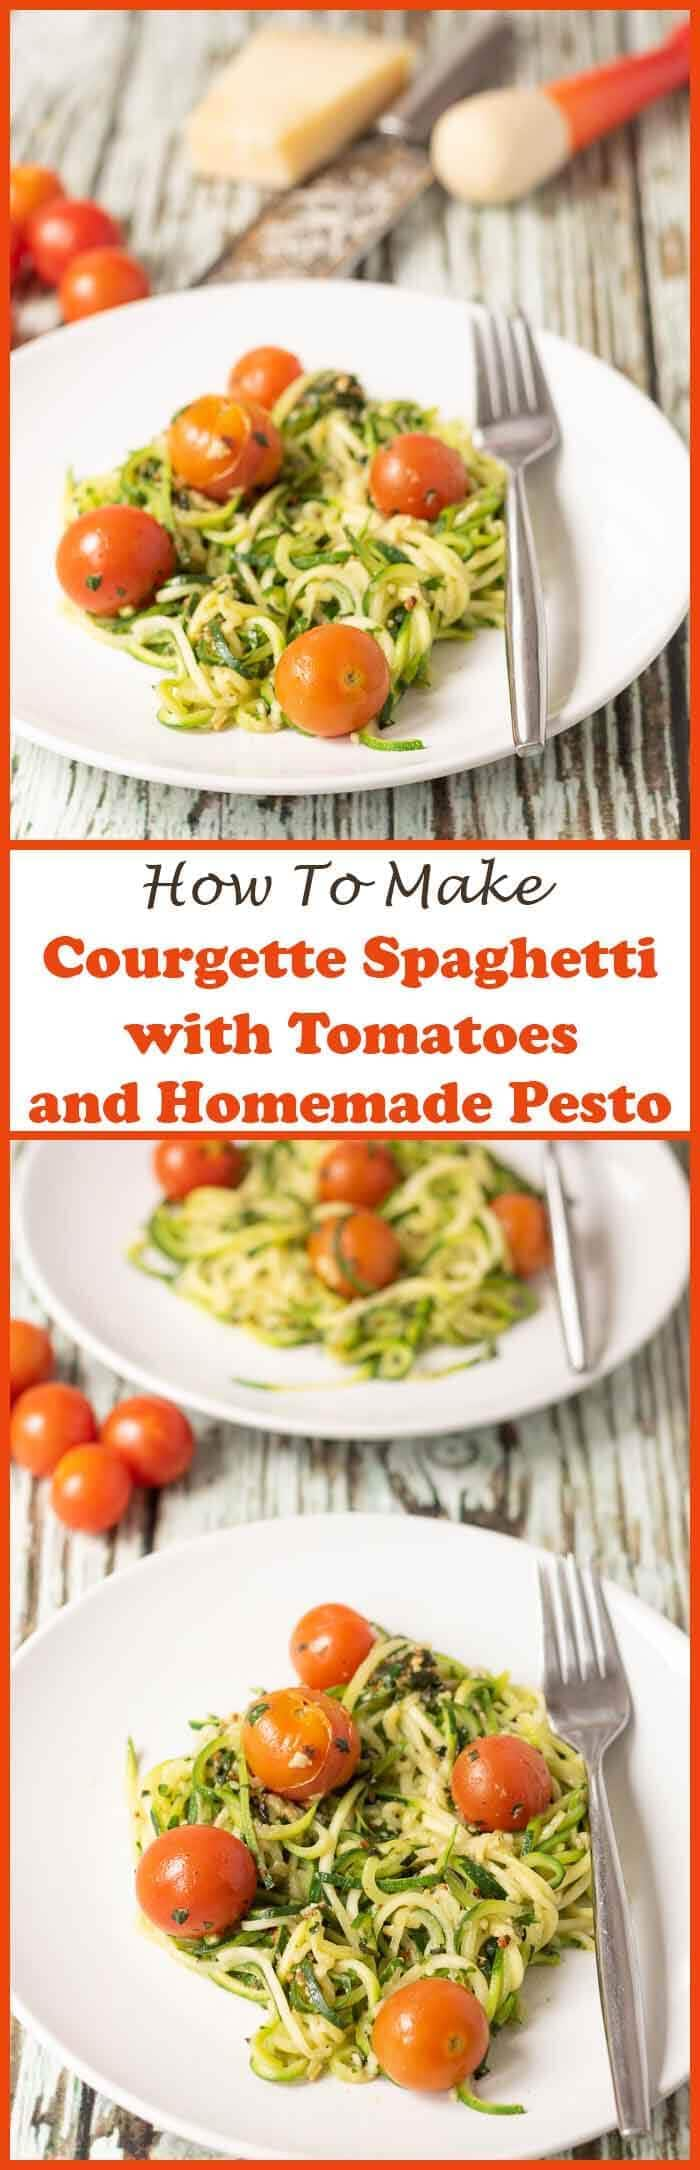 Courgette spaghetti with tomatoes and homemade pesto is a delicious and simple recipe. It's perfect for beginners to get to grips with how to make courgette spaghetti. You'll soon be using that spiralizer like professional in no time at all!